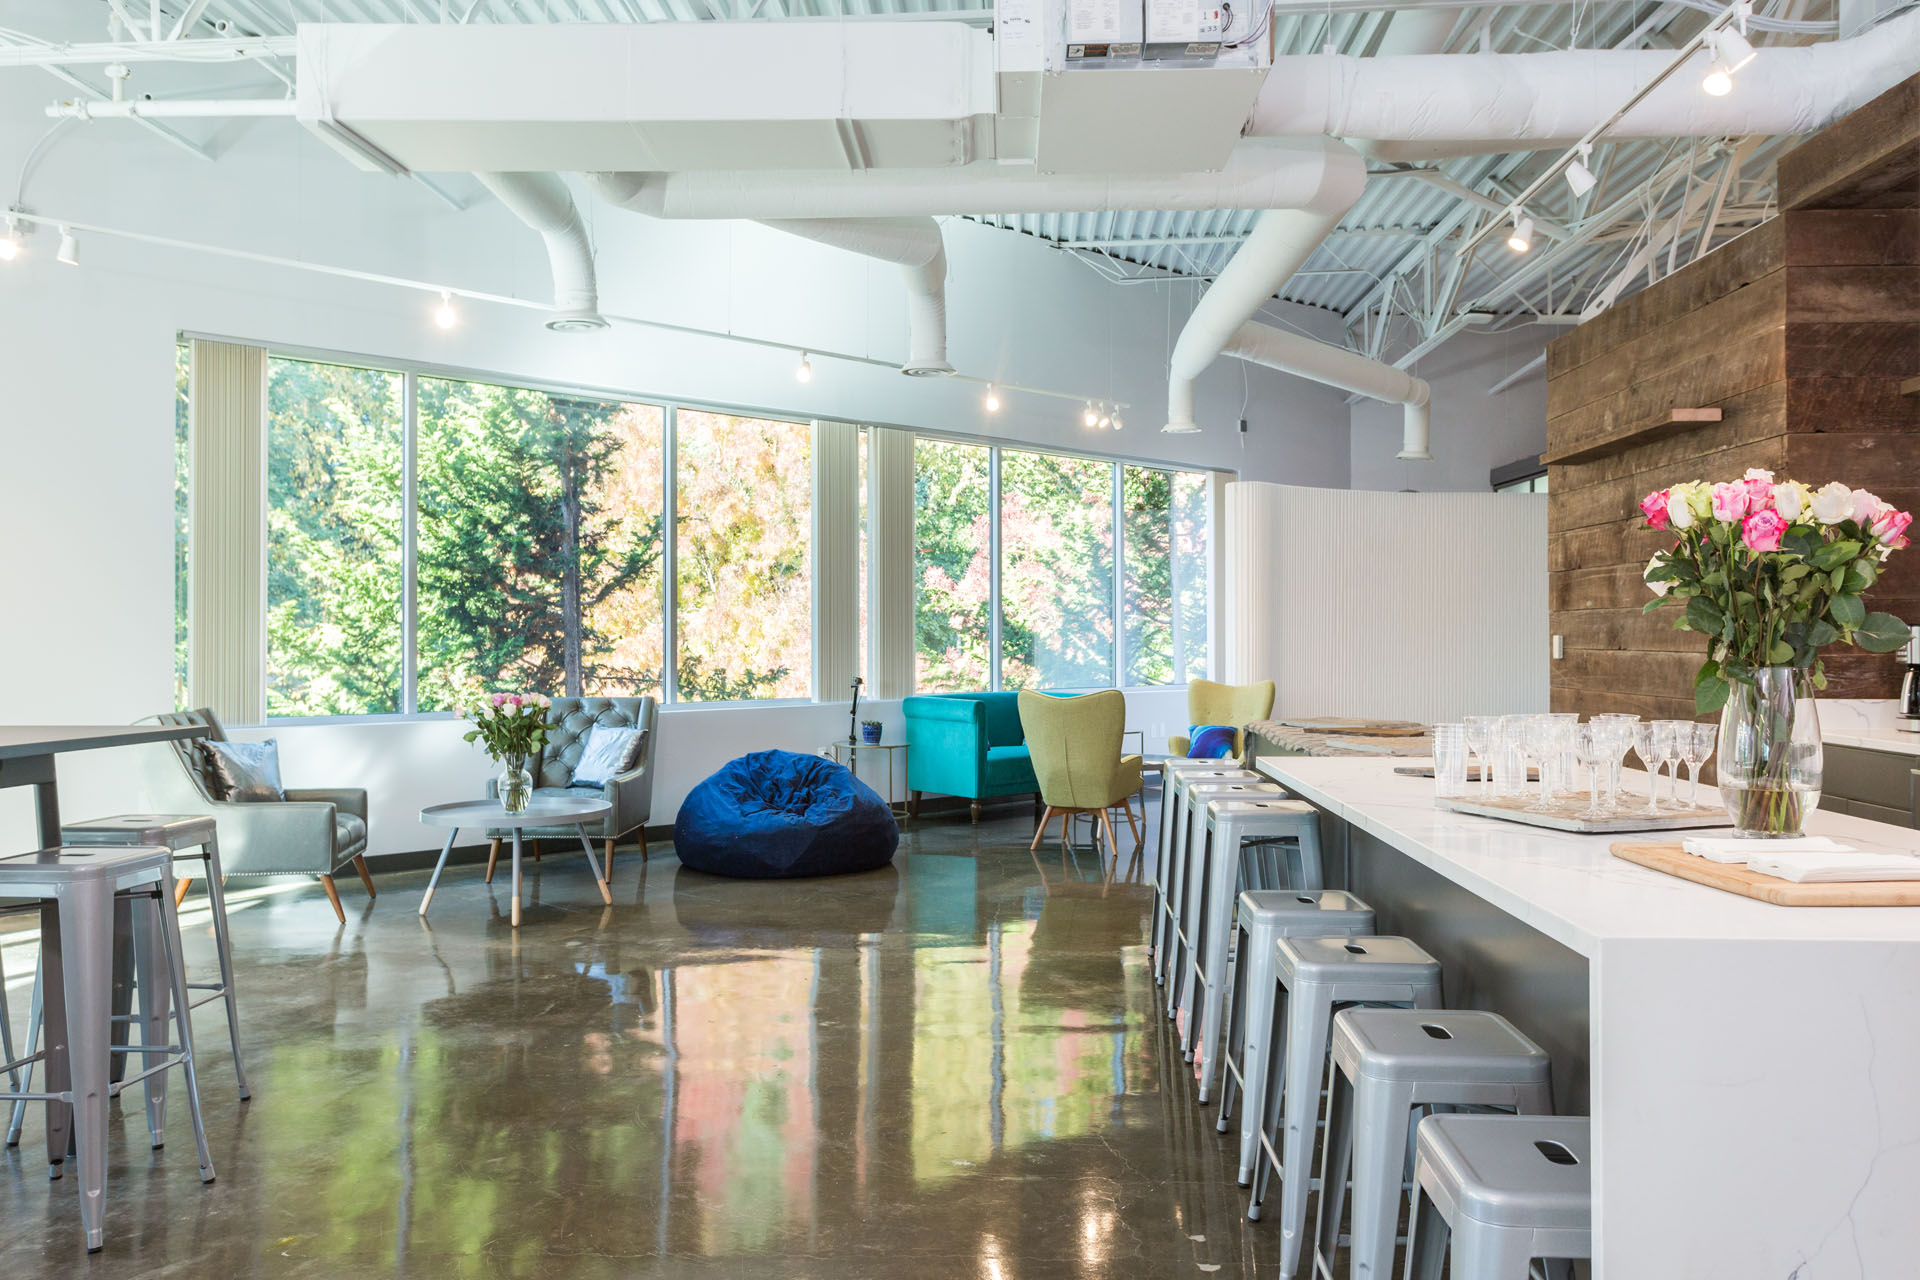 Coworking Portland Tigard Beaverton Lake Oswego. Meeting Rooms Portland Tigard Beaverton Lake Oswego. Free Parking.